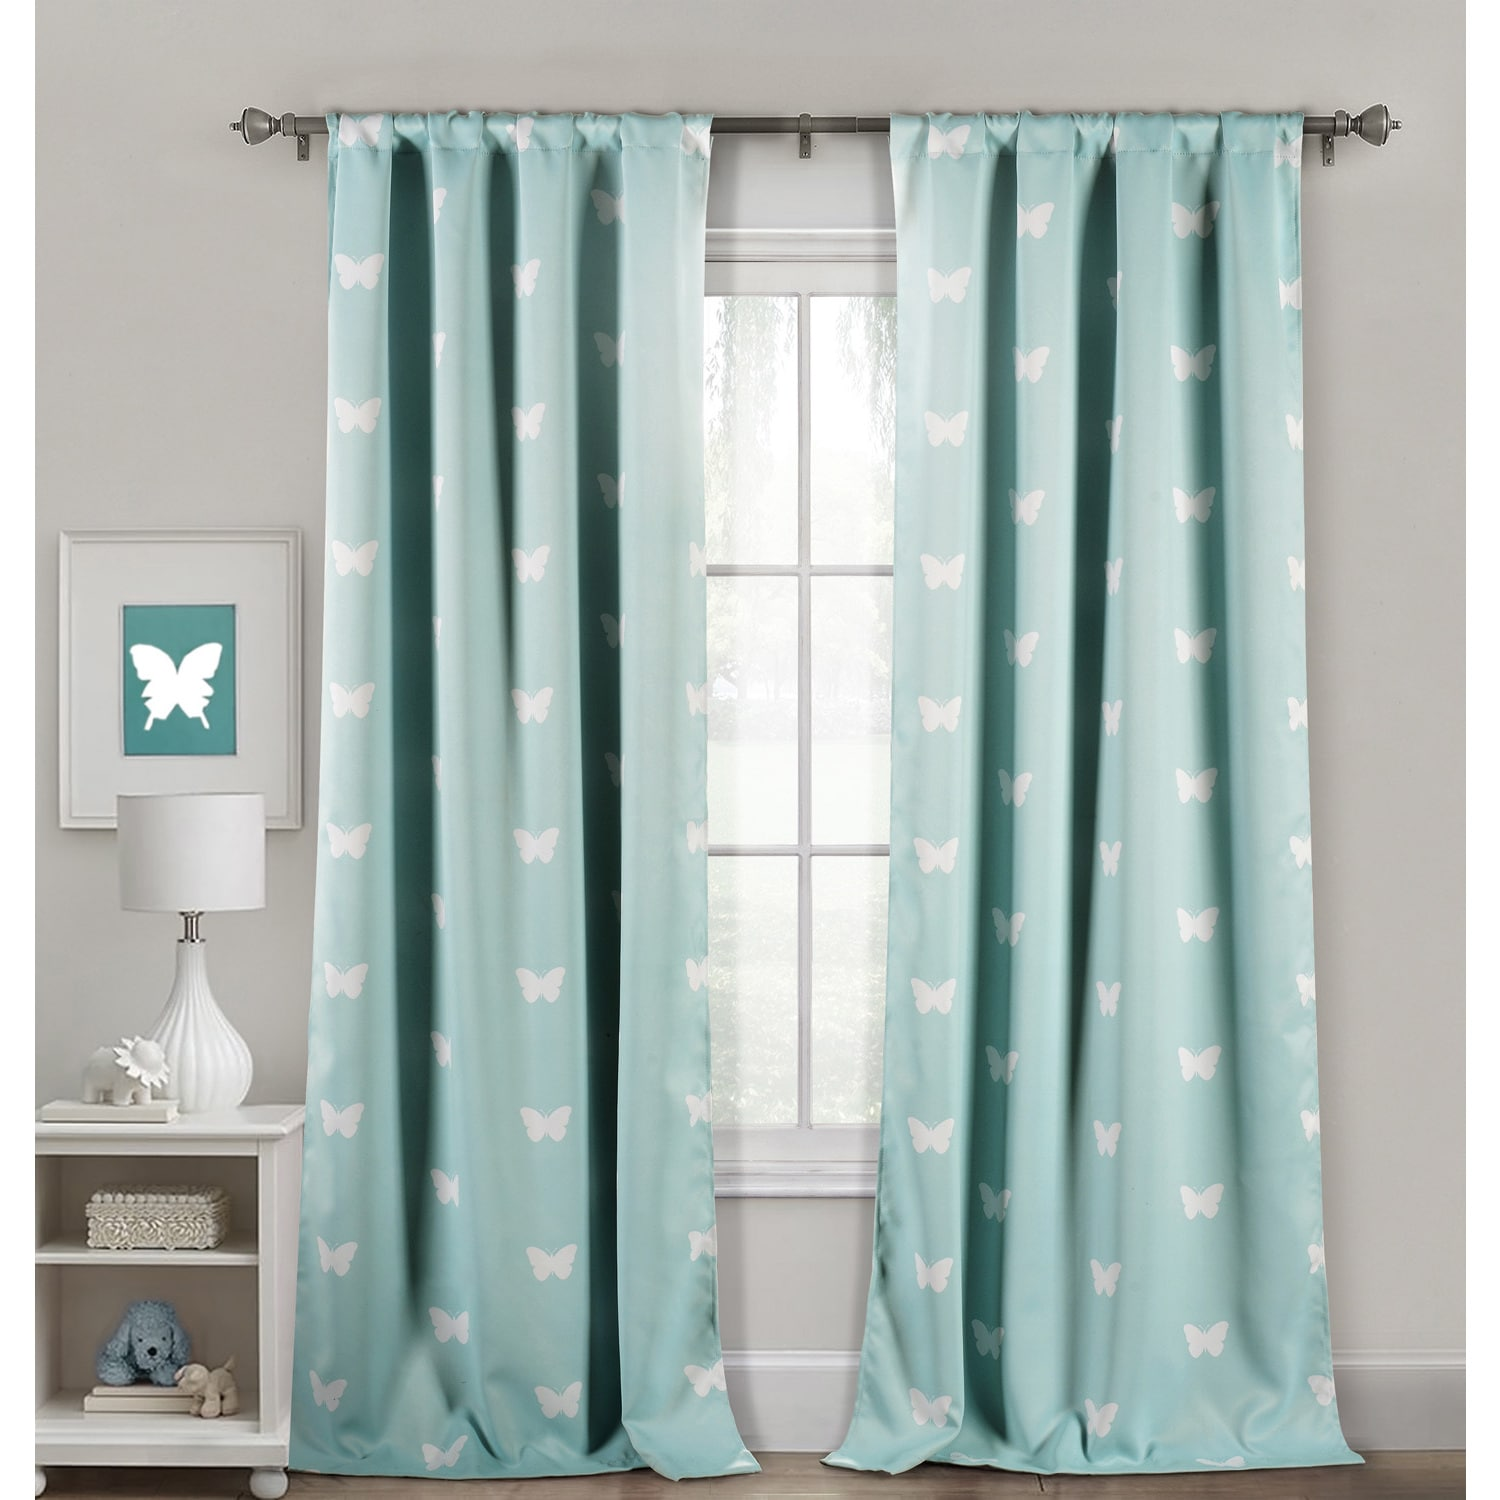 eyelet m blackout enlarge out textured x to curtains black products curtain on image premium valencia b click